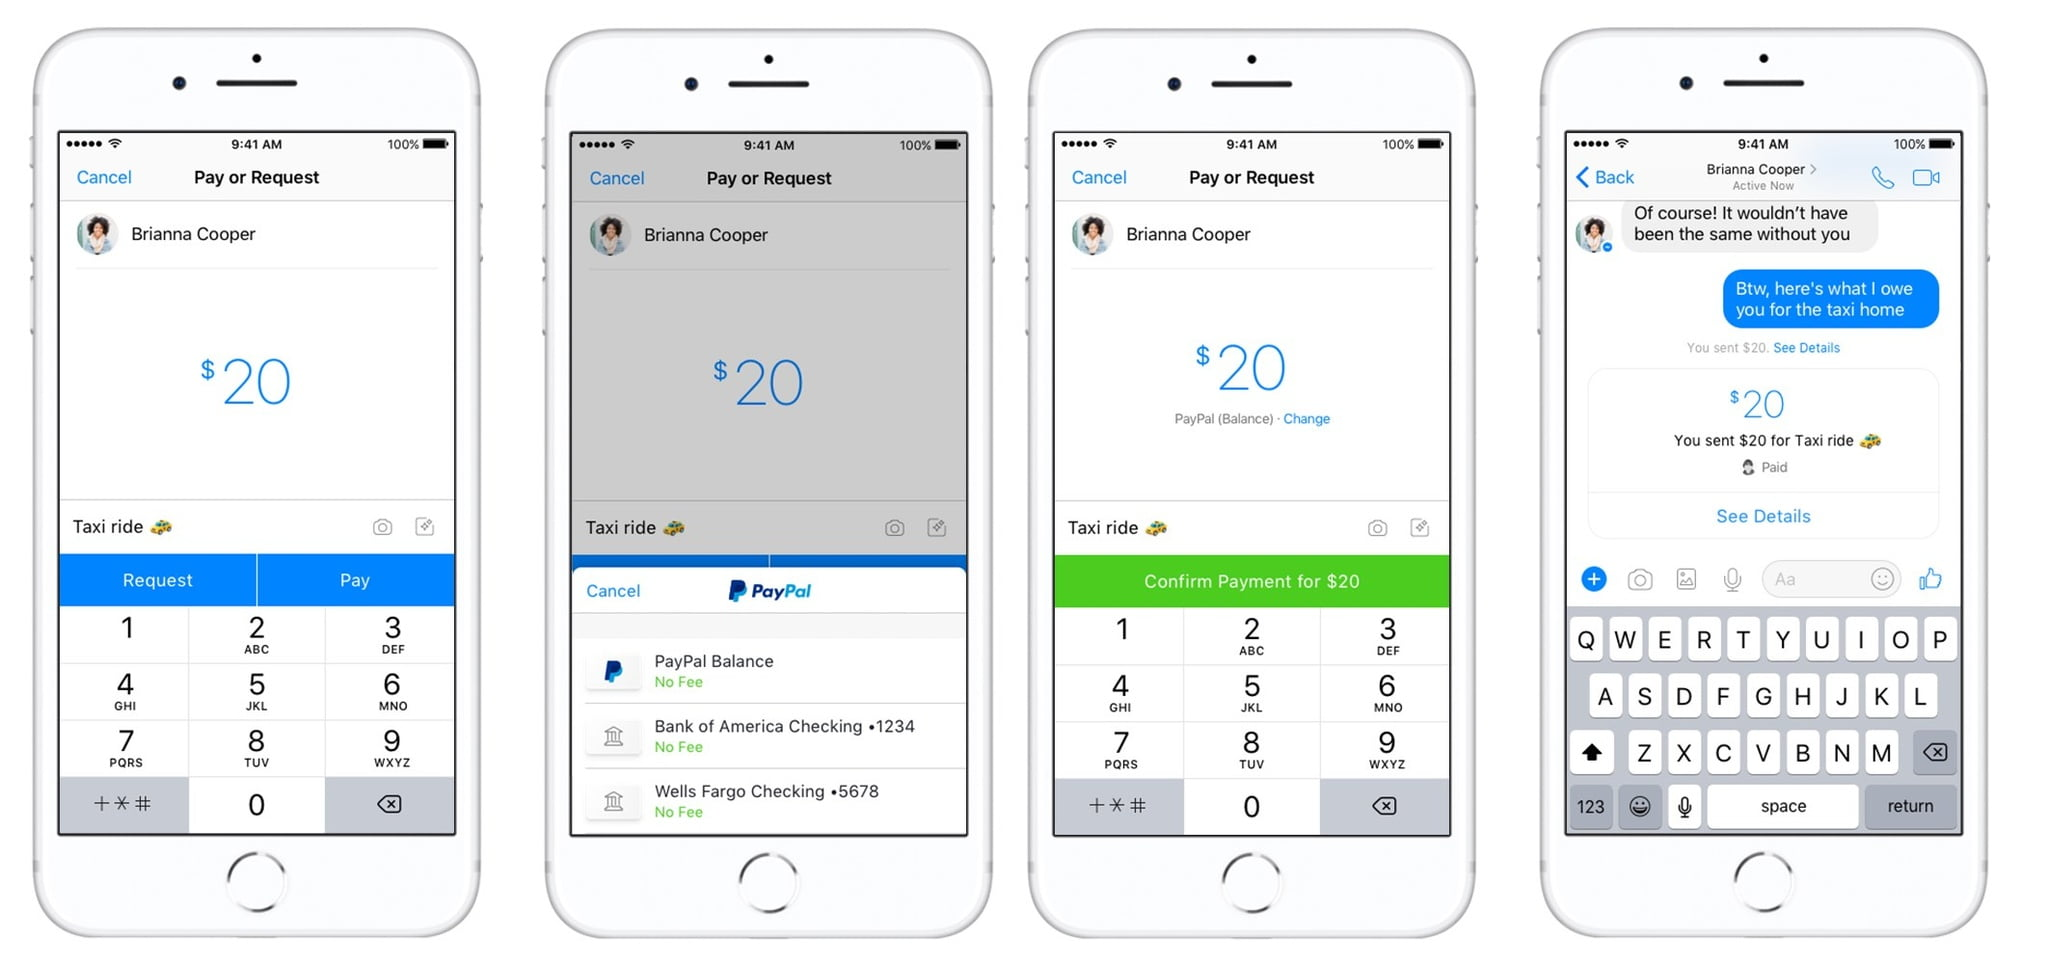 Facebook's Adding PayPal as a New Peer-to-Peer Payment Option in Messenger